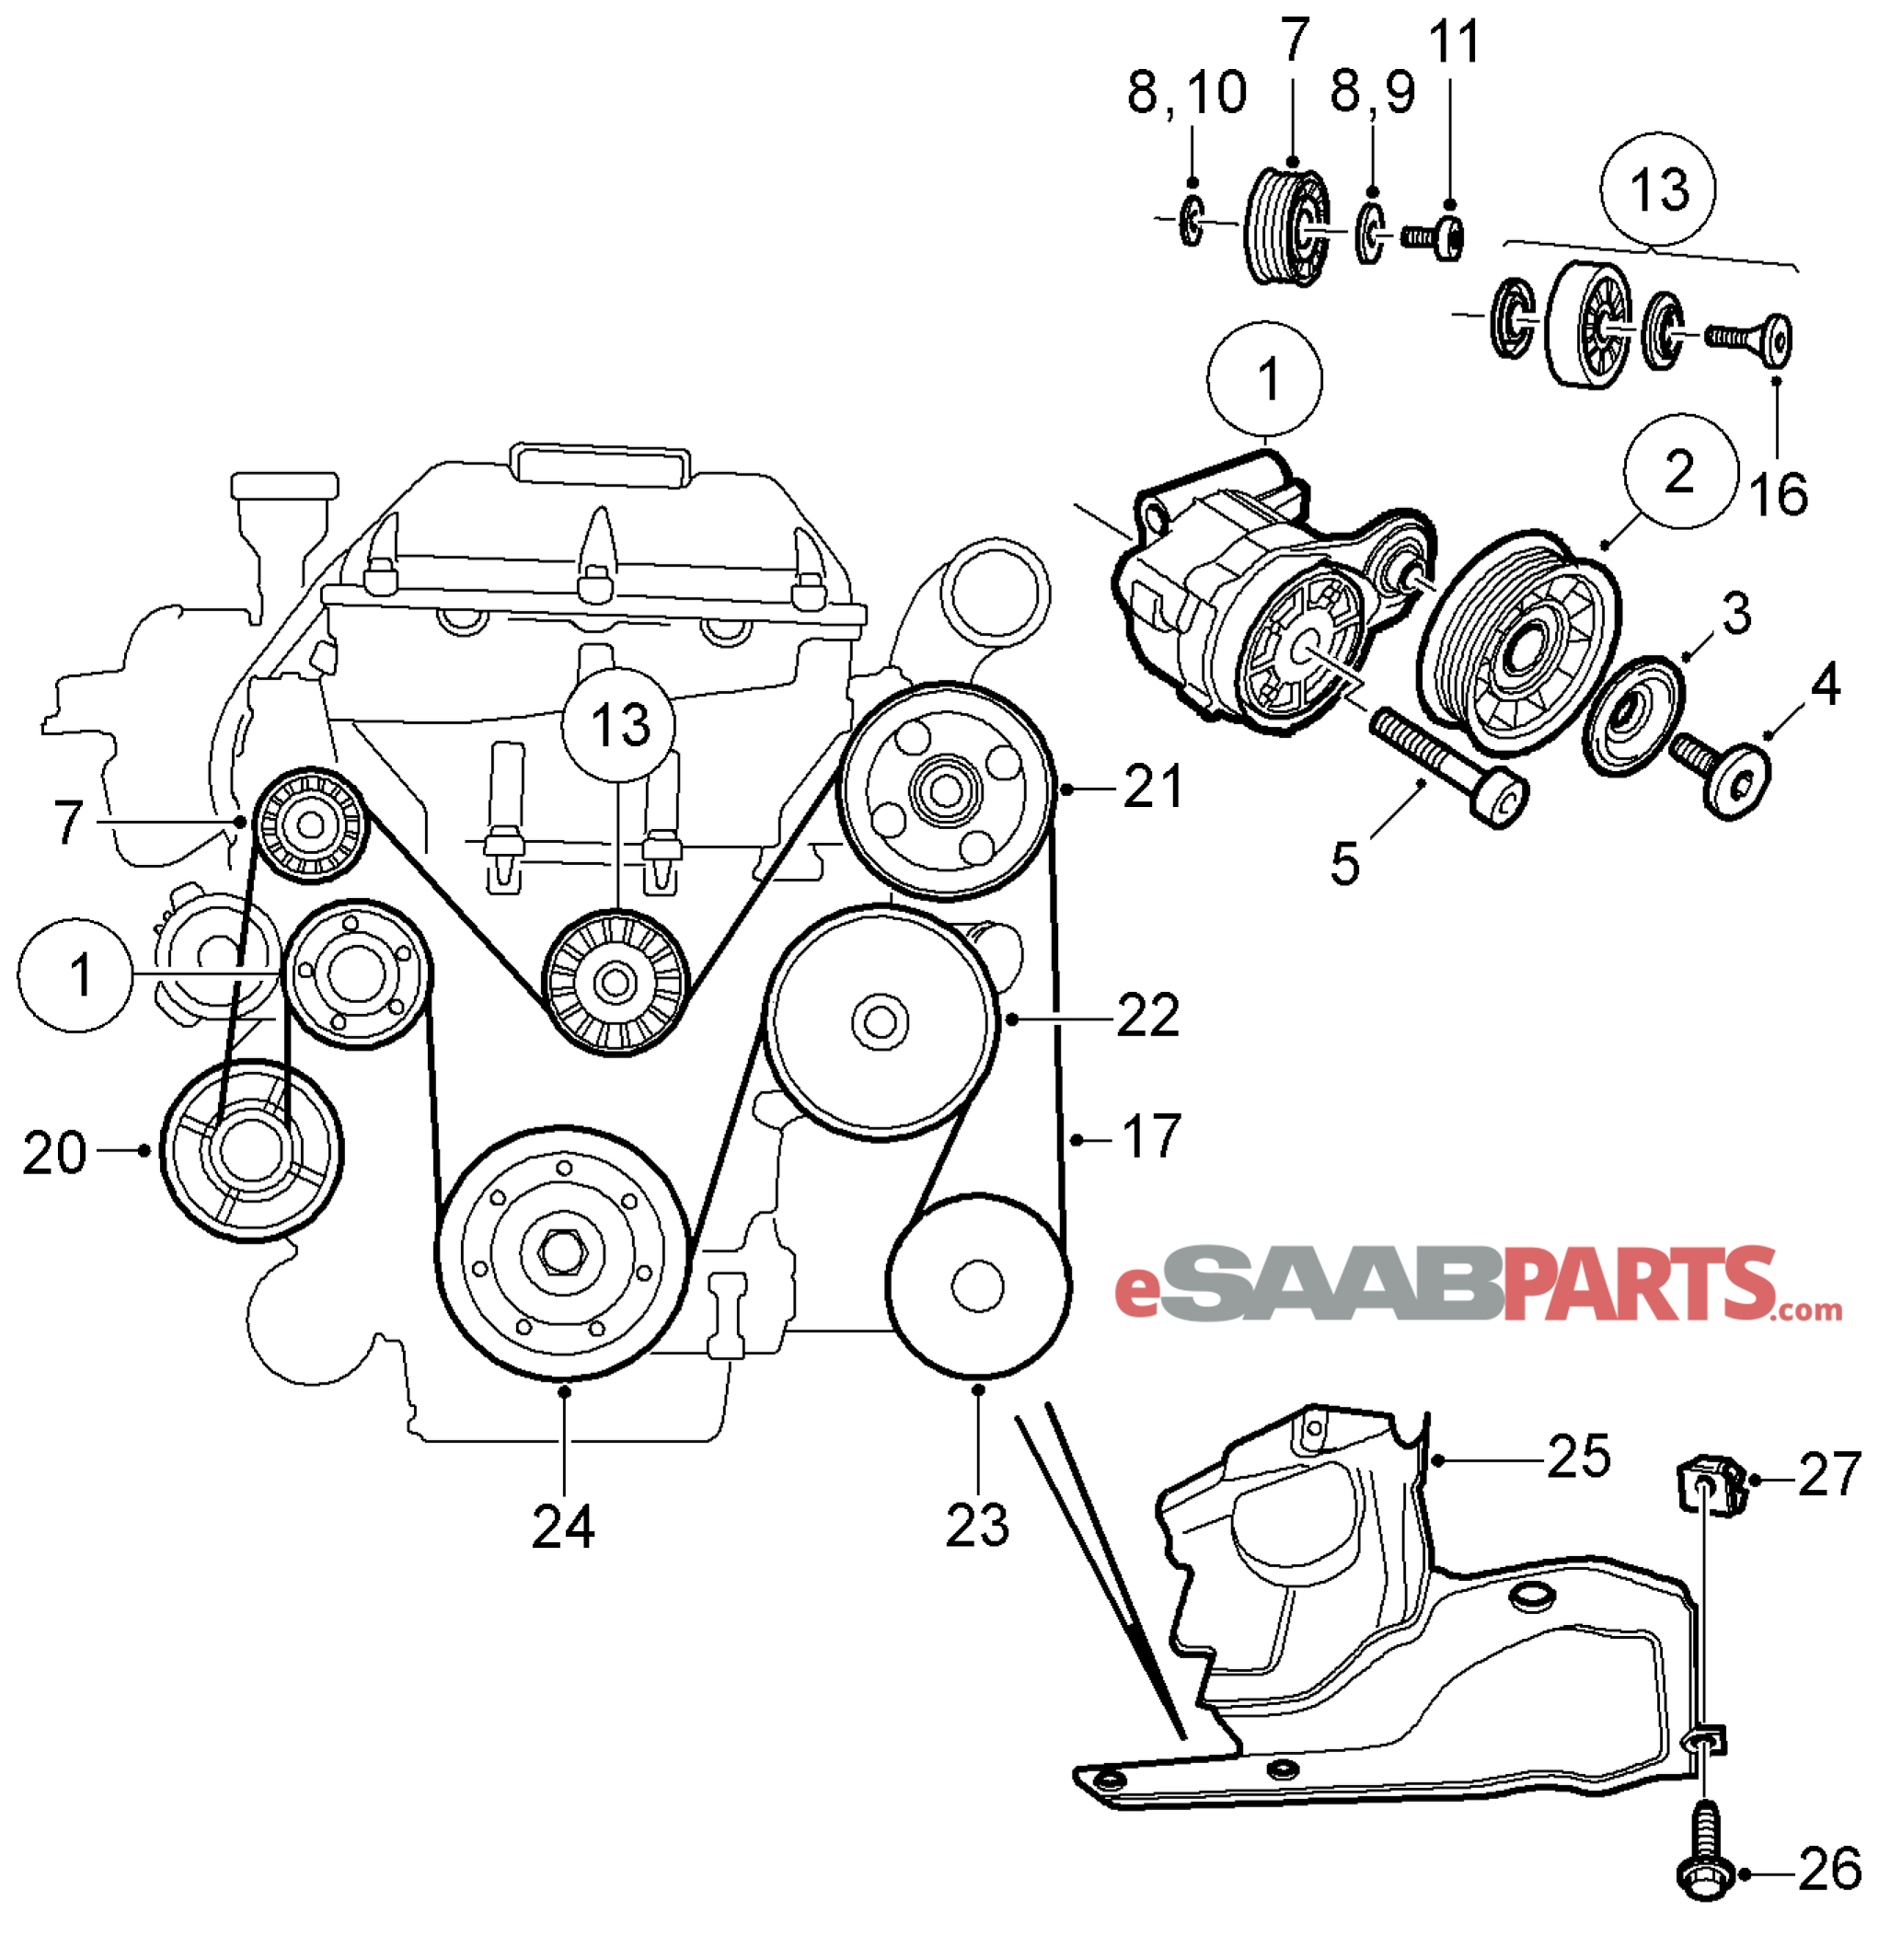 layout for 2003 saab 9 3 fuse box belt diagram for a 2003 saab 9 3 [4898755] saab belt tensioner - genuine saab parts from ...